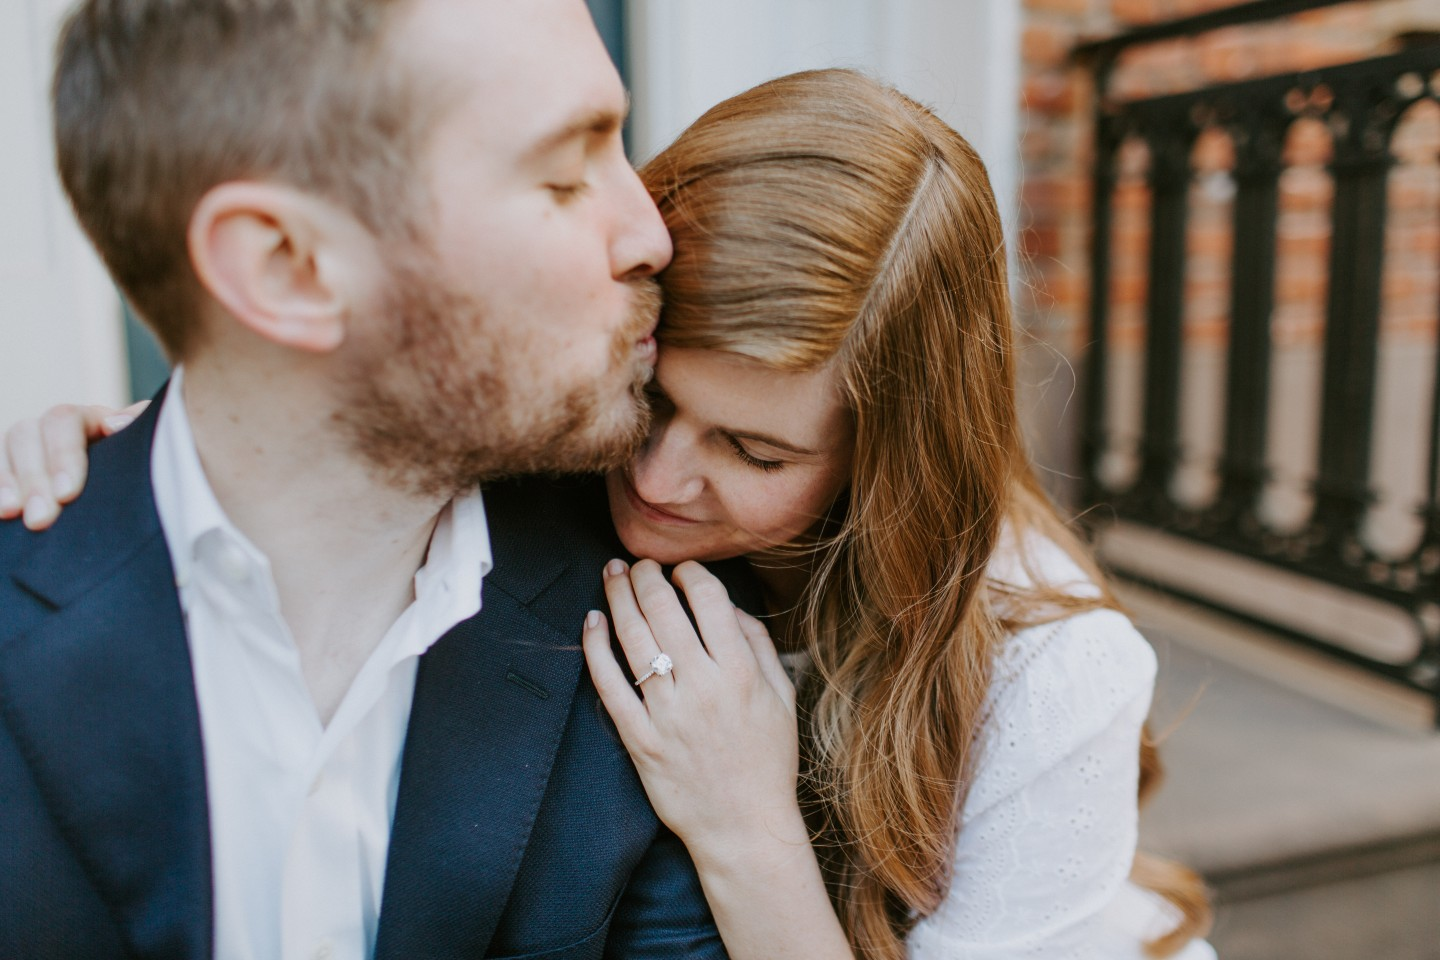 Popular London life and style blogger, Mollie Moore, shares a few engagement photos shot in NYC